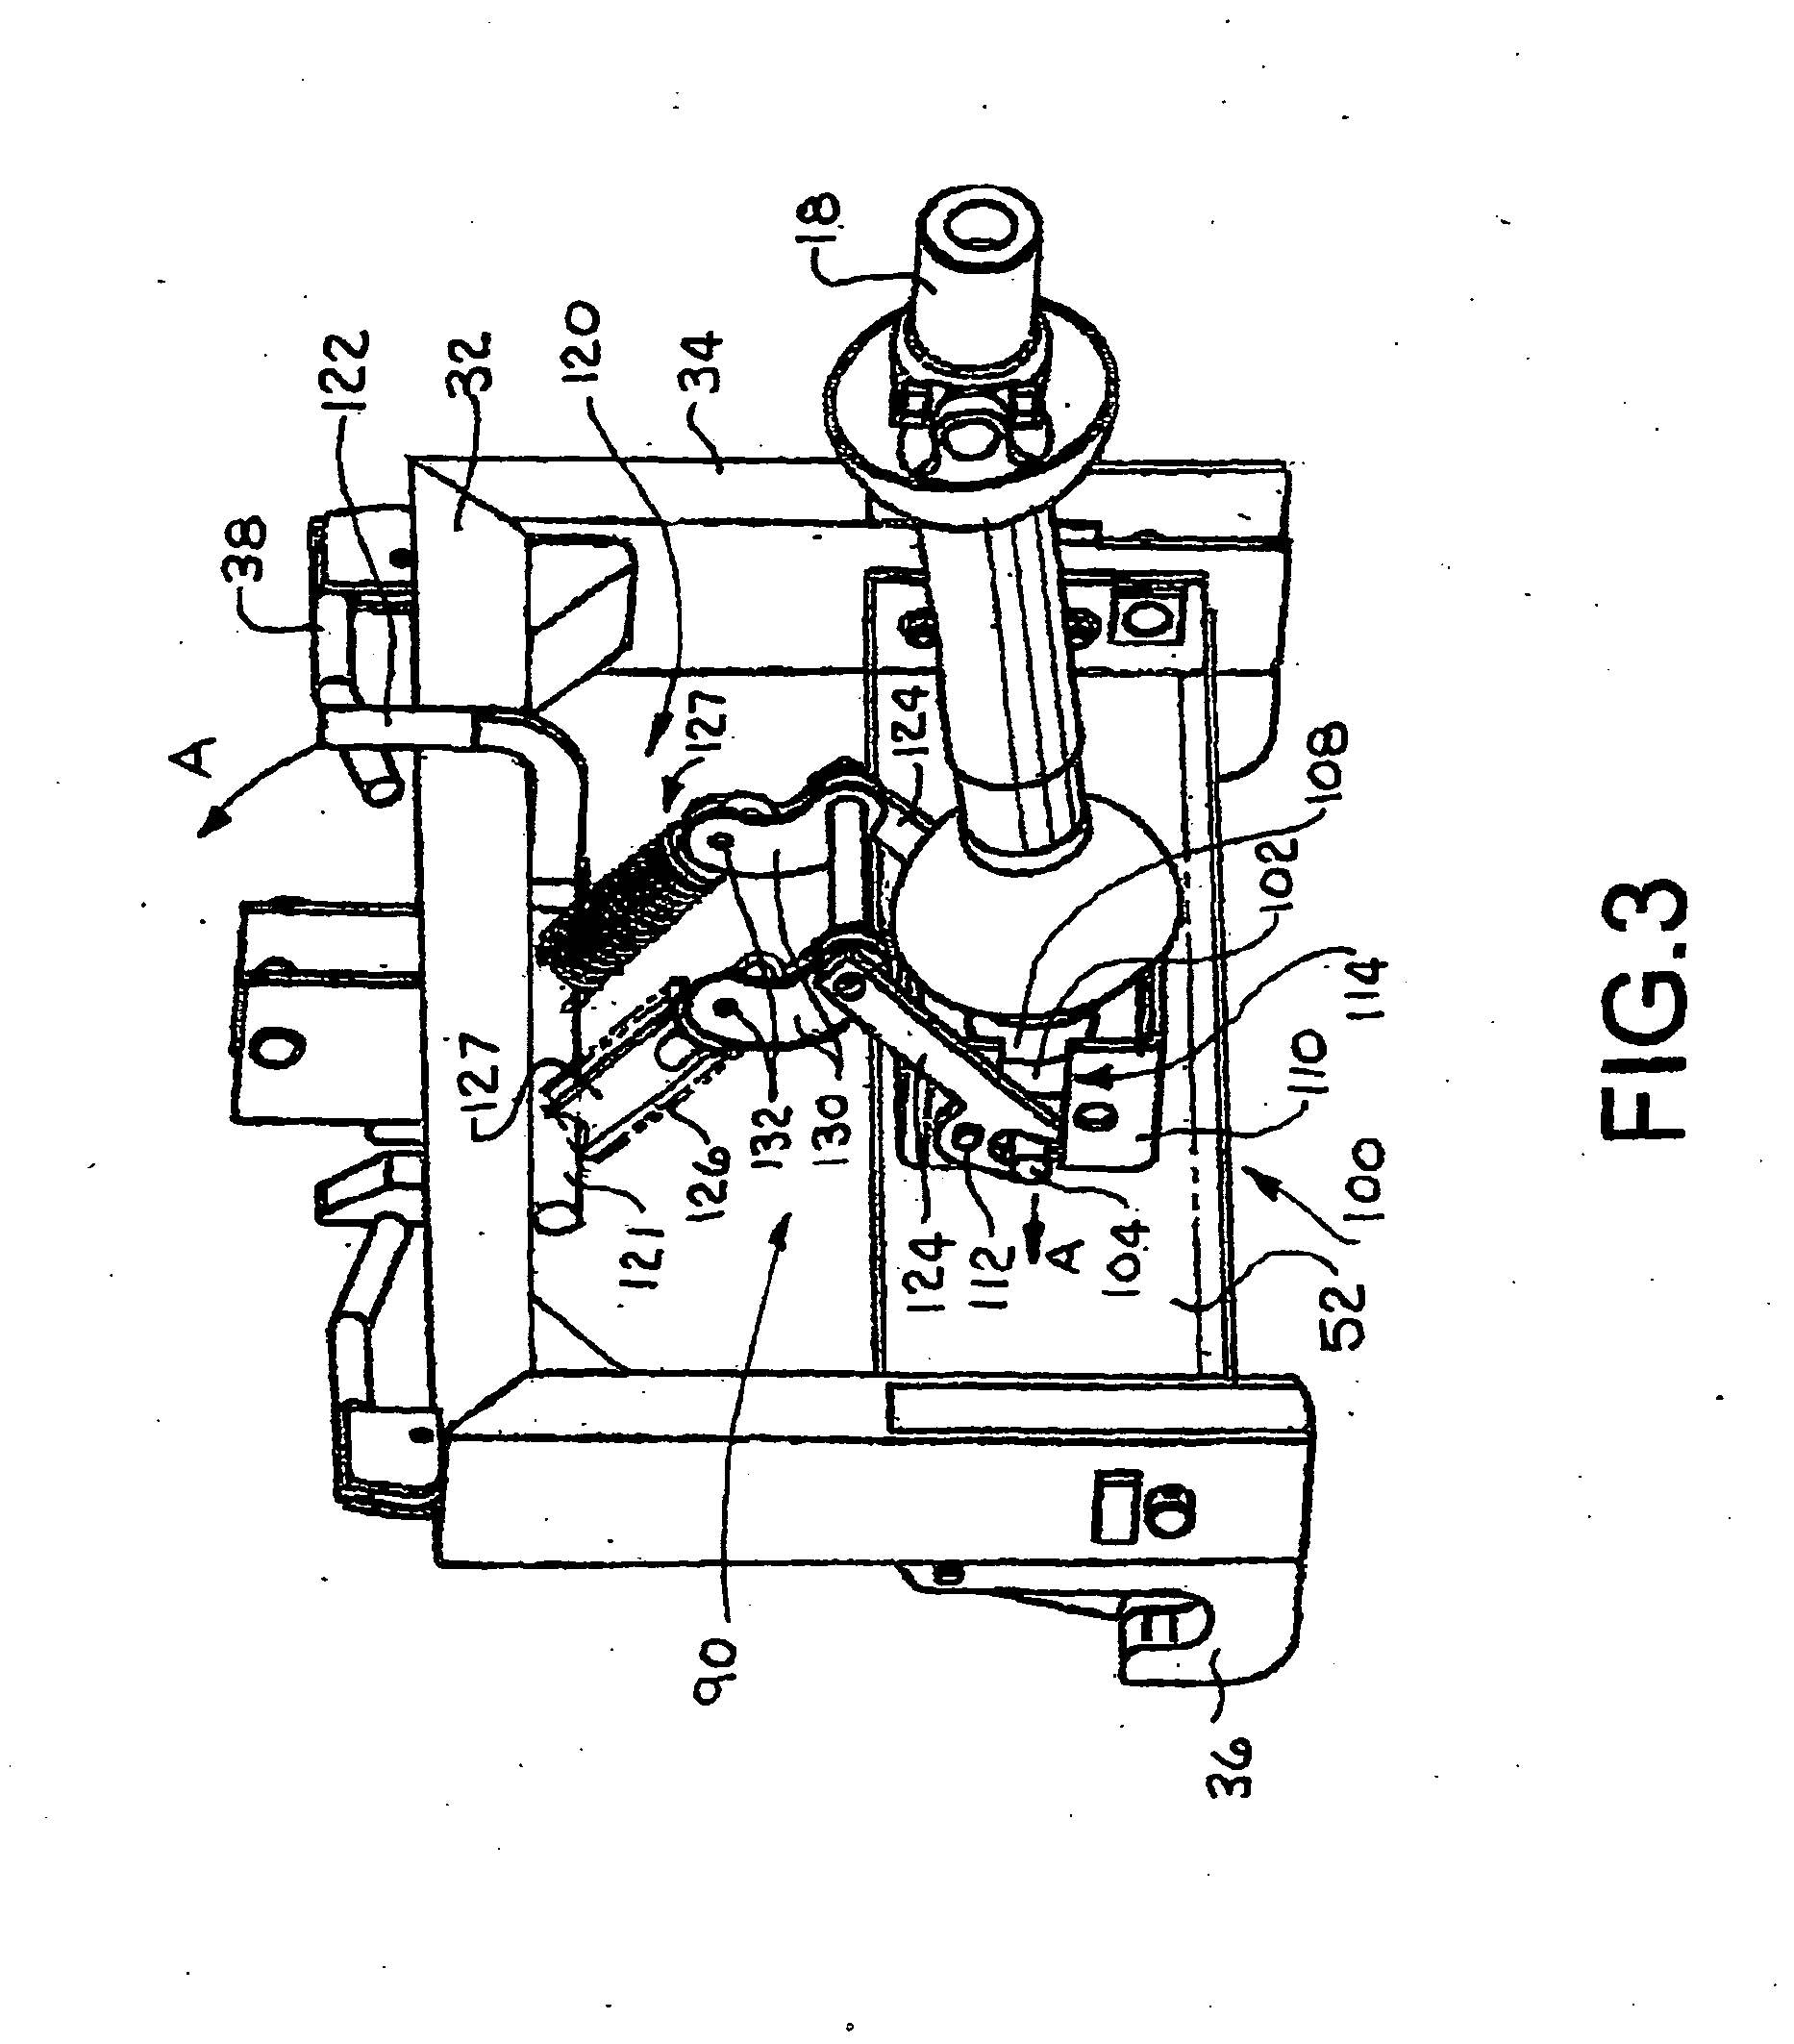 Patent EP1925195B1 - Lever connect PTO module for three